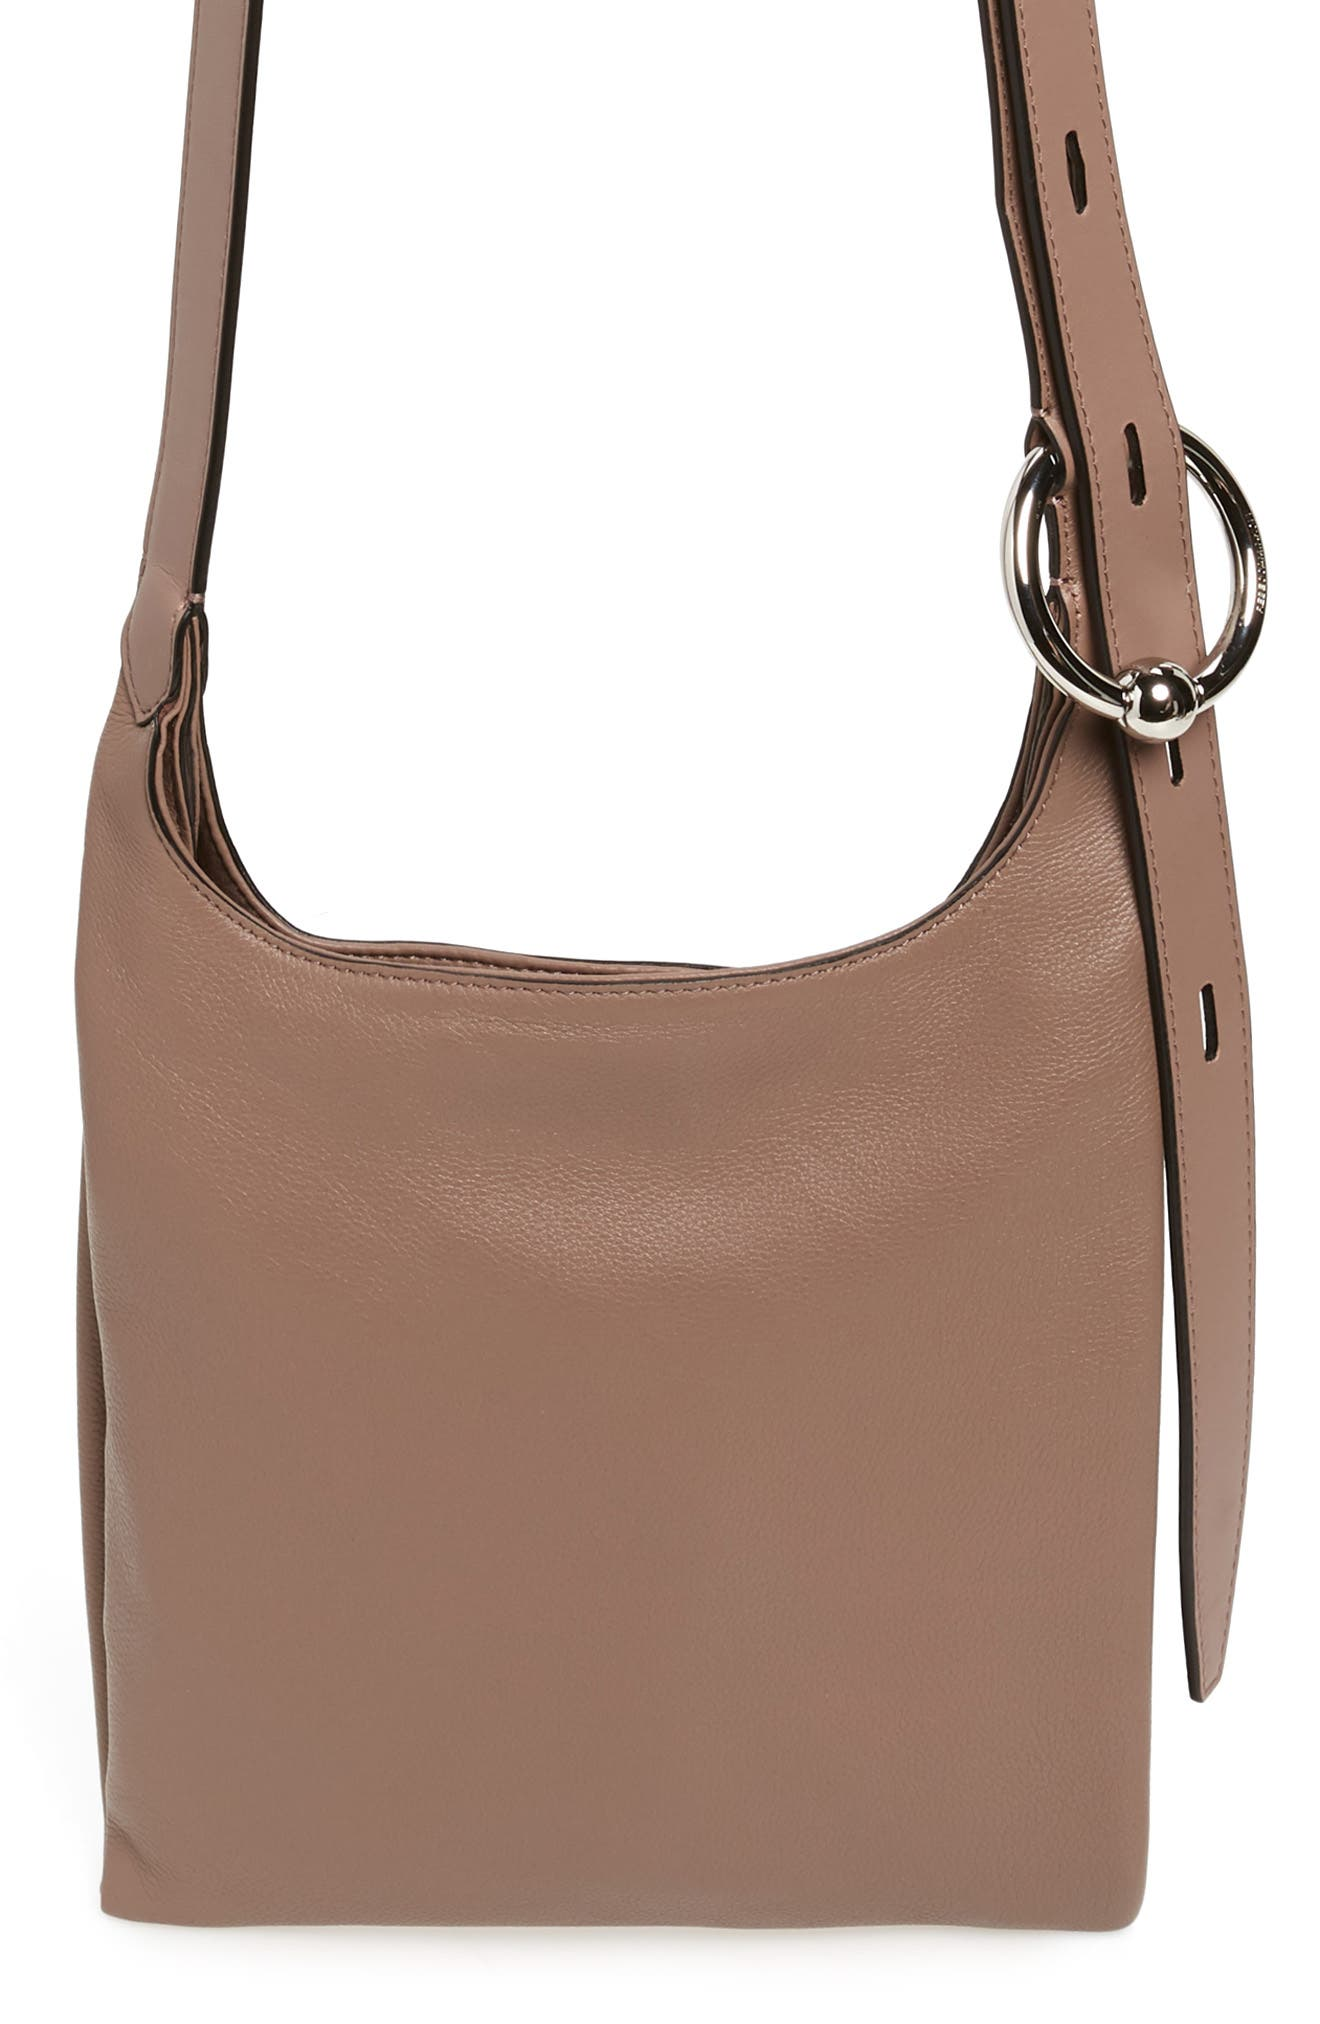 Small Karlie Leather Feed Bag - Brown in Mink